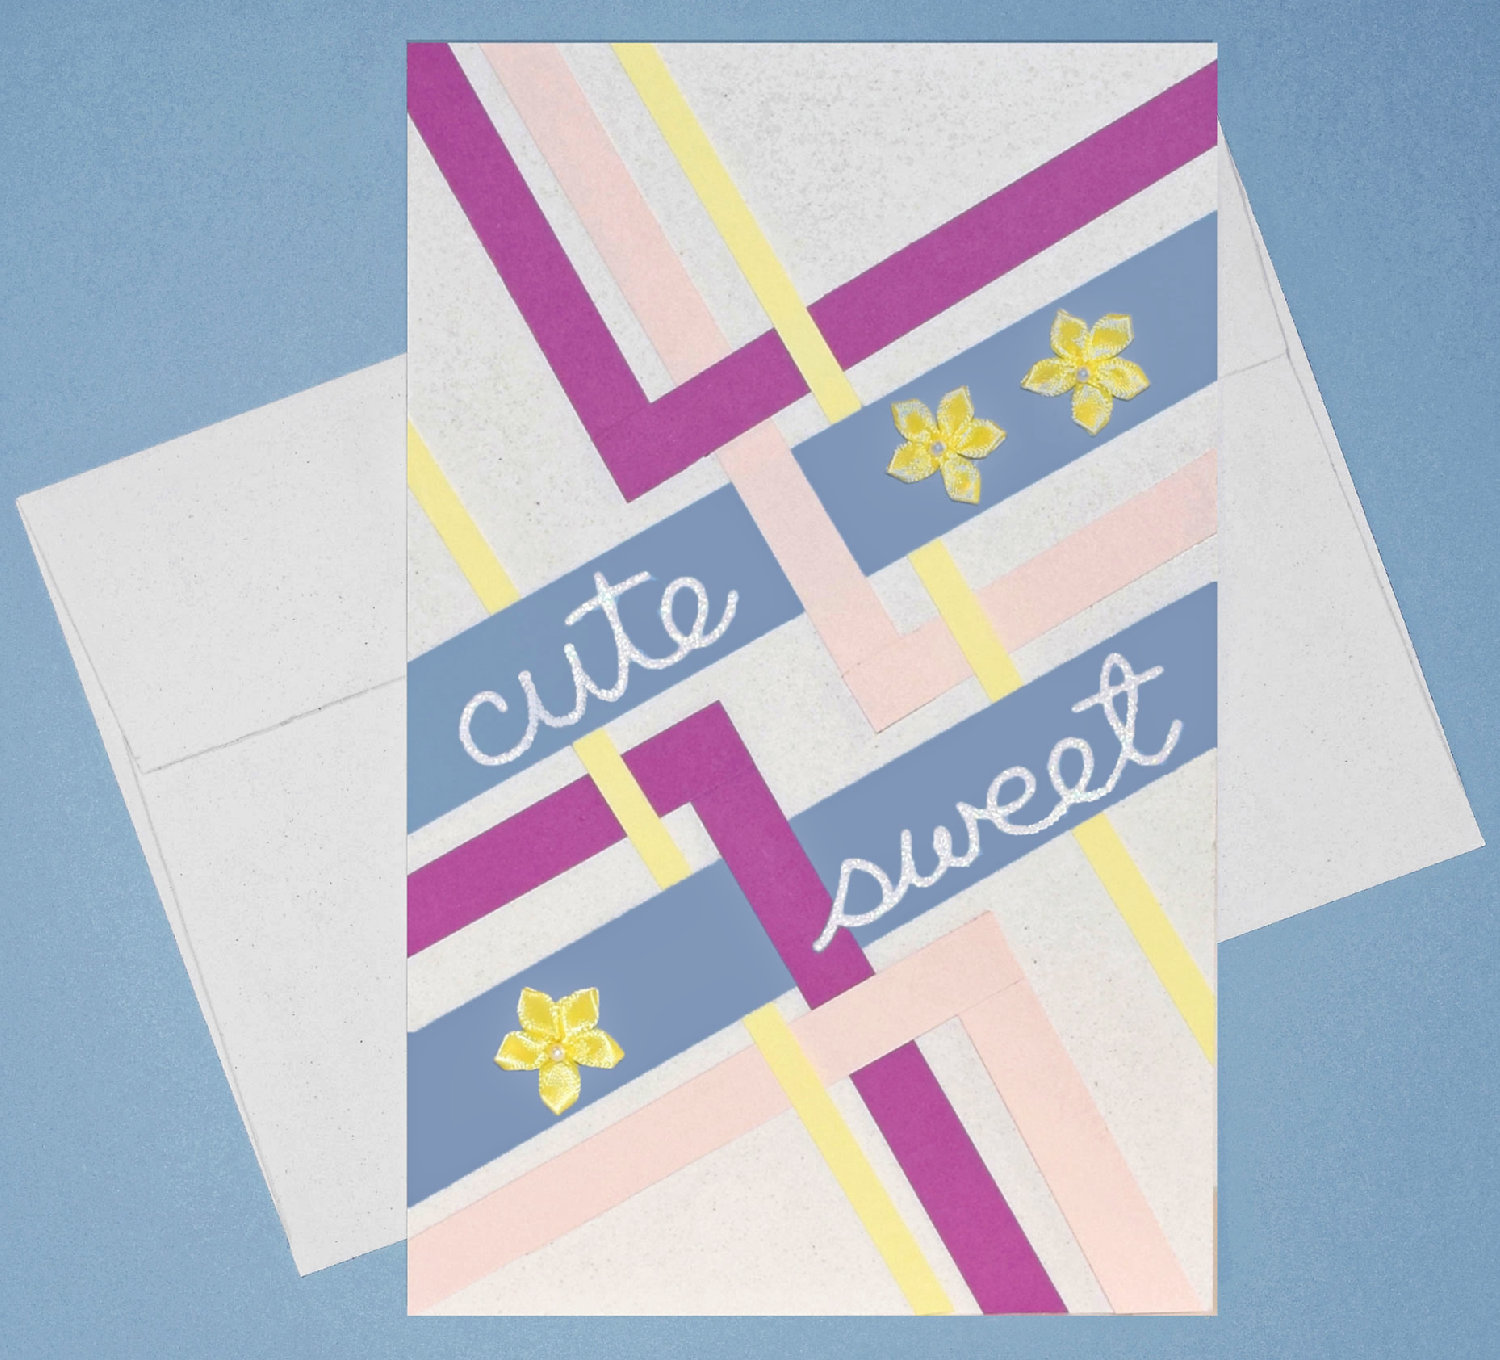 brighten a day with happy thoughts and bright paper - Paper Paper CuteSweet w proofw envelope 3 placed - Brighten a day with happy thoughts and bright paper